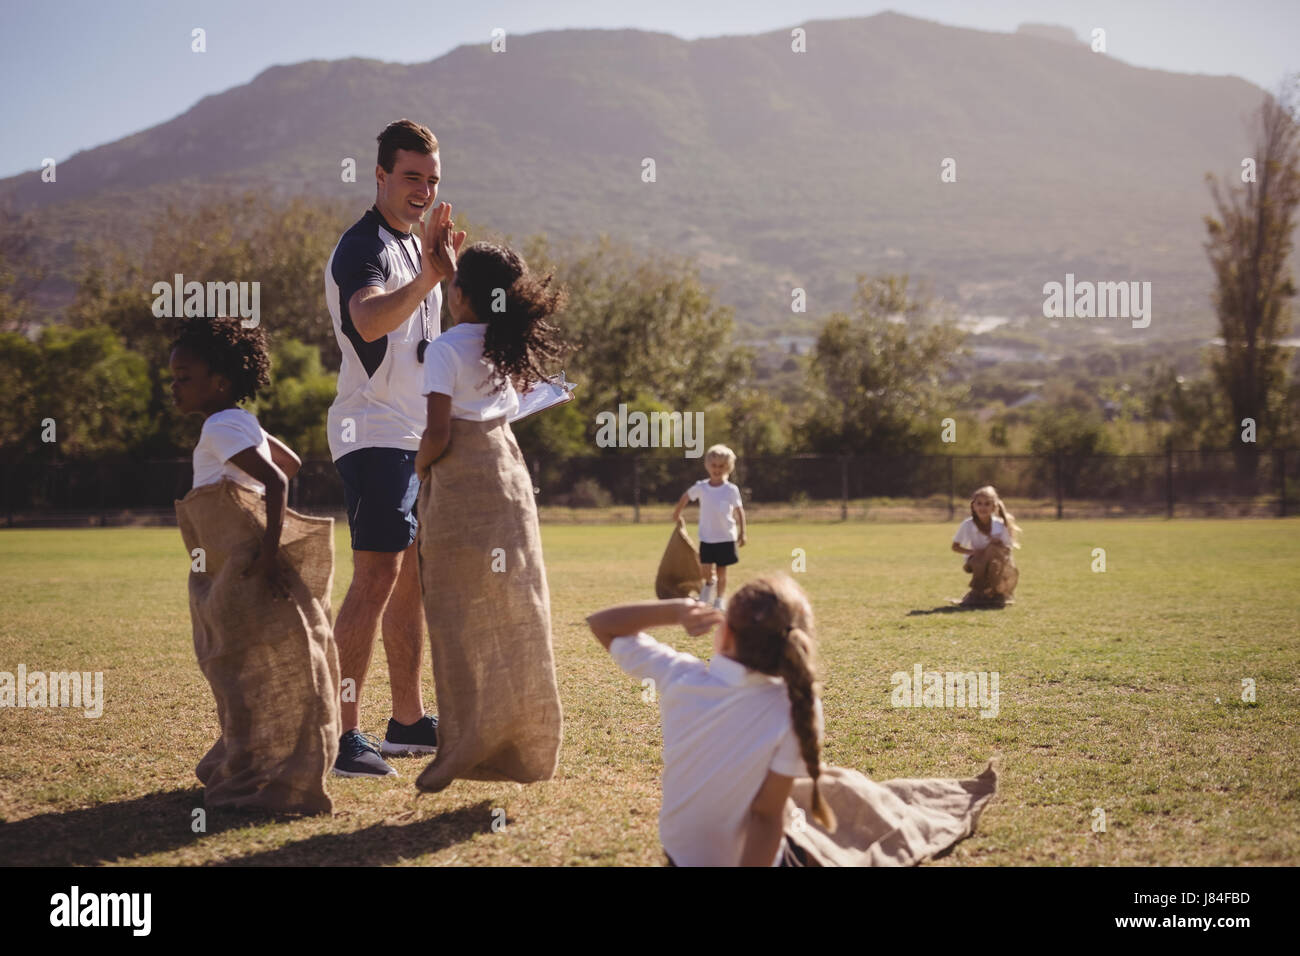 Coach and schoolgirl giving high five to each other during sack race on a sunny day - Stock Image